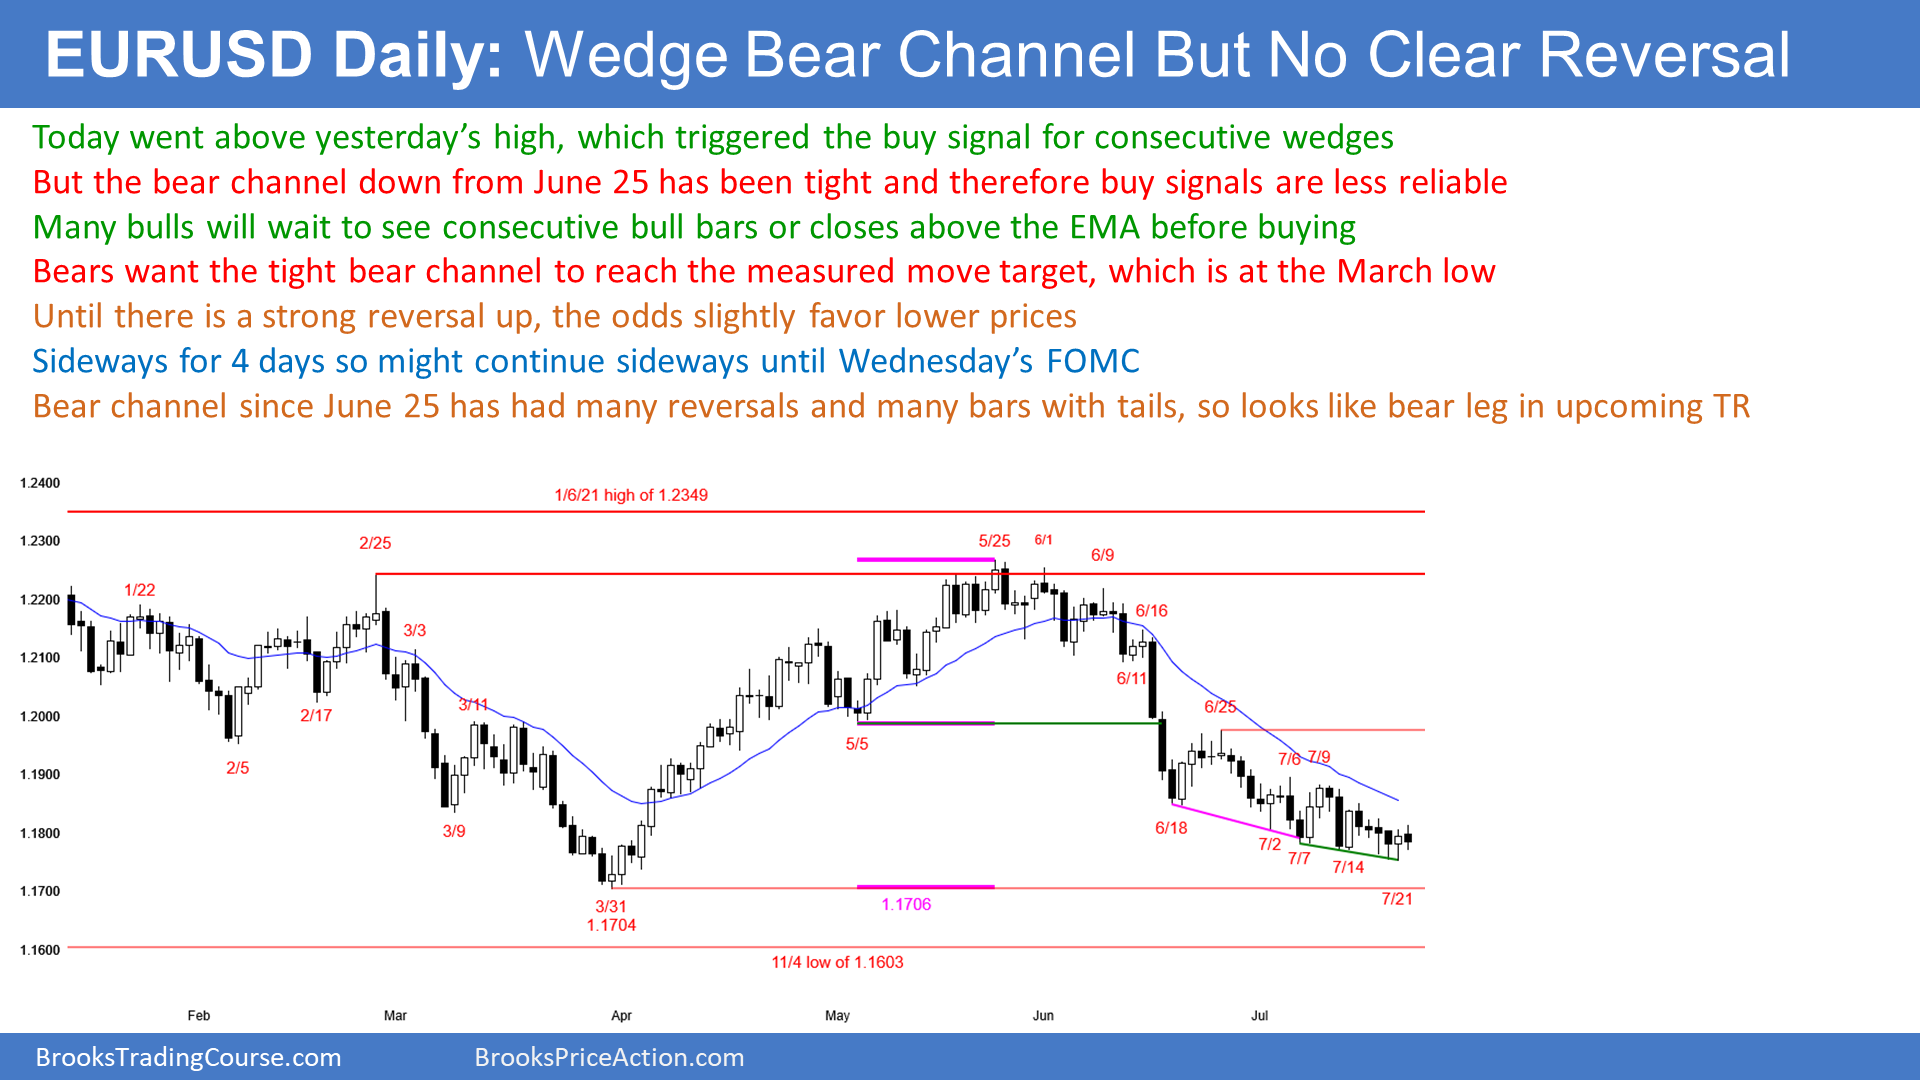 EUR/USD Wedge Bear Channel But No Reversal